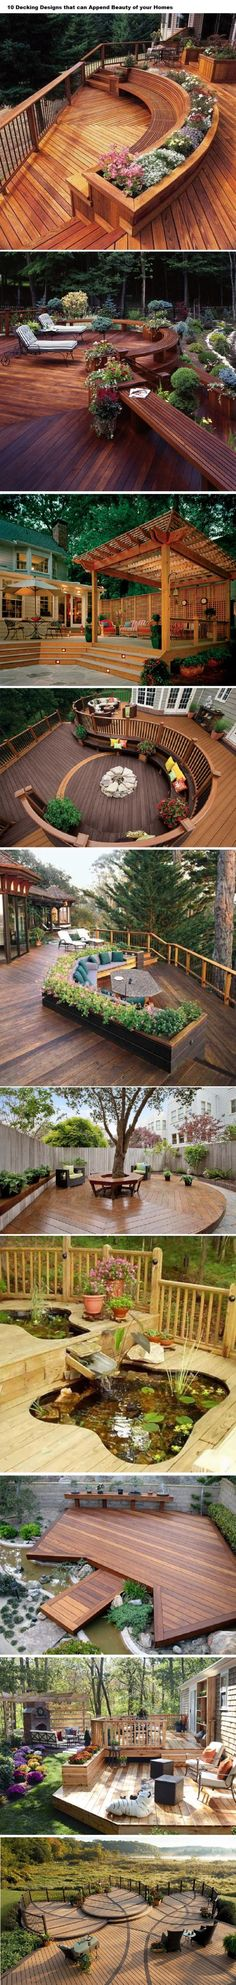 10 Decking Designs that can Append Beauty of your Homes | WoodworkerZ.com